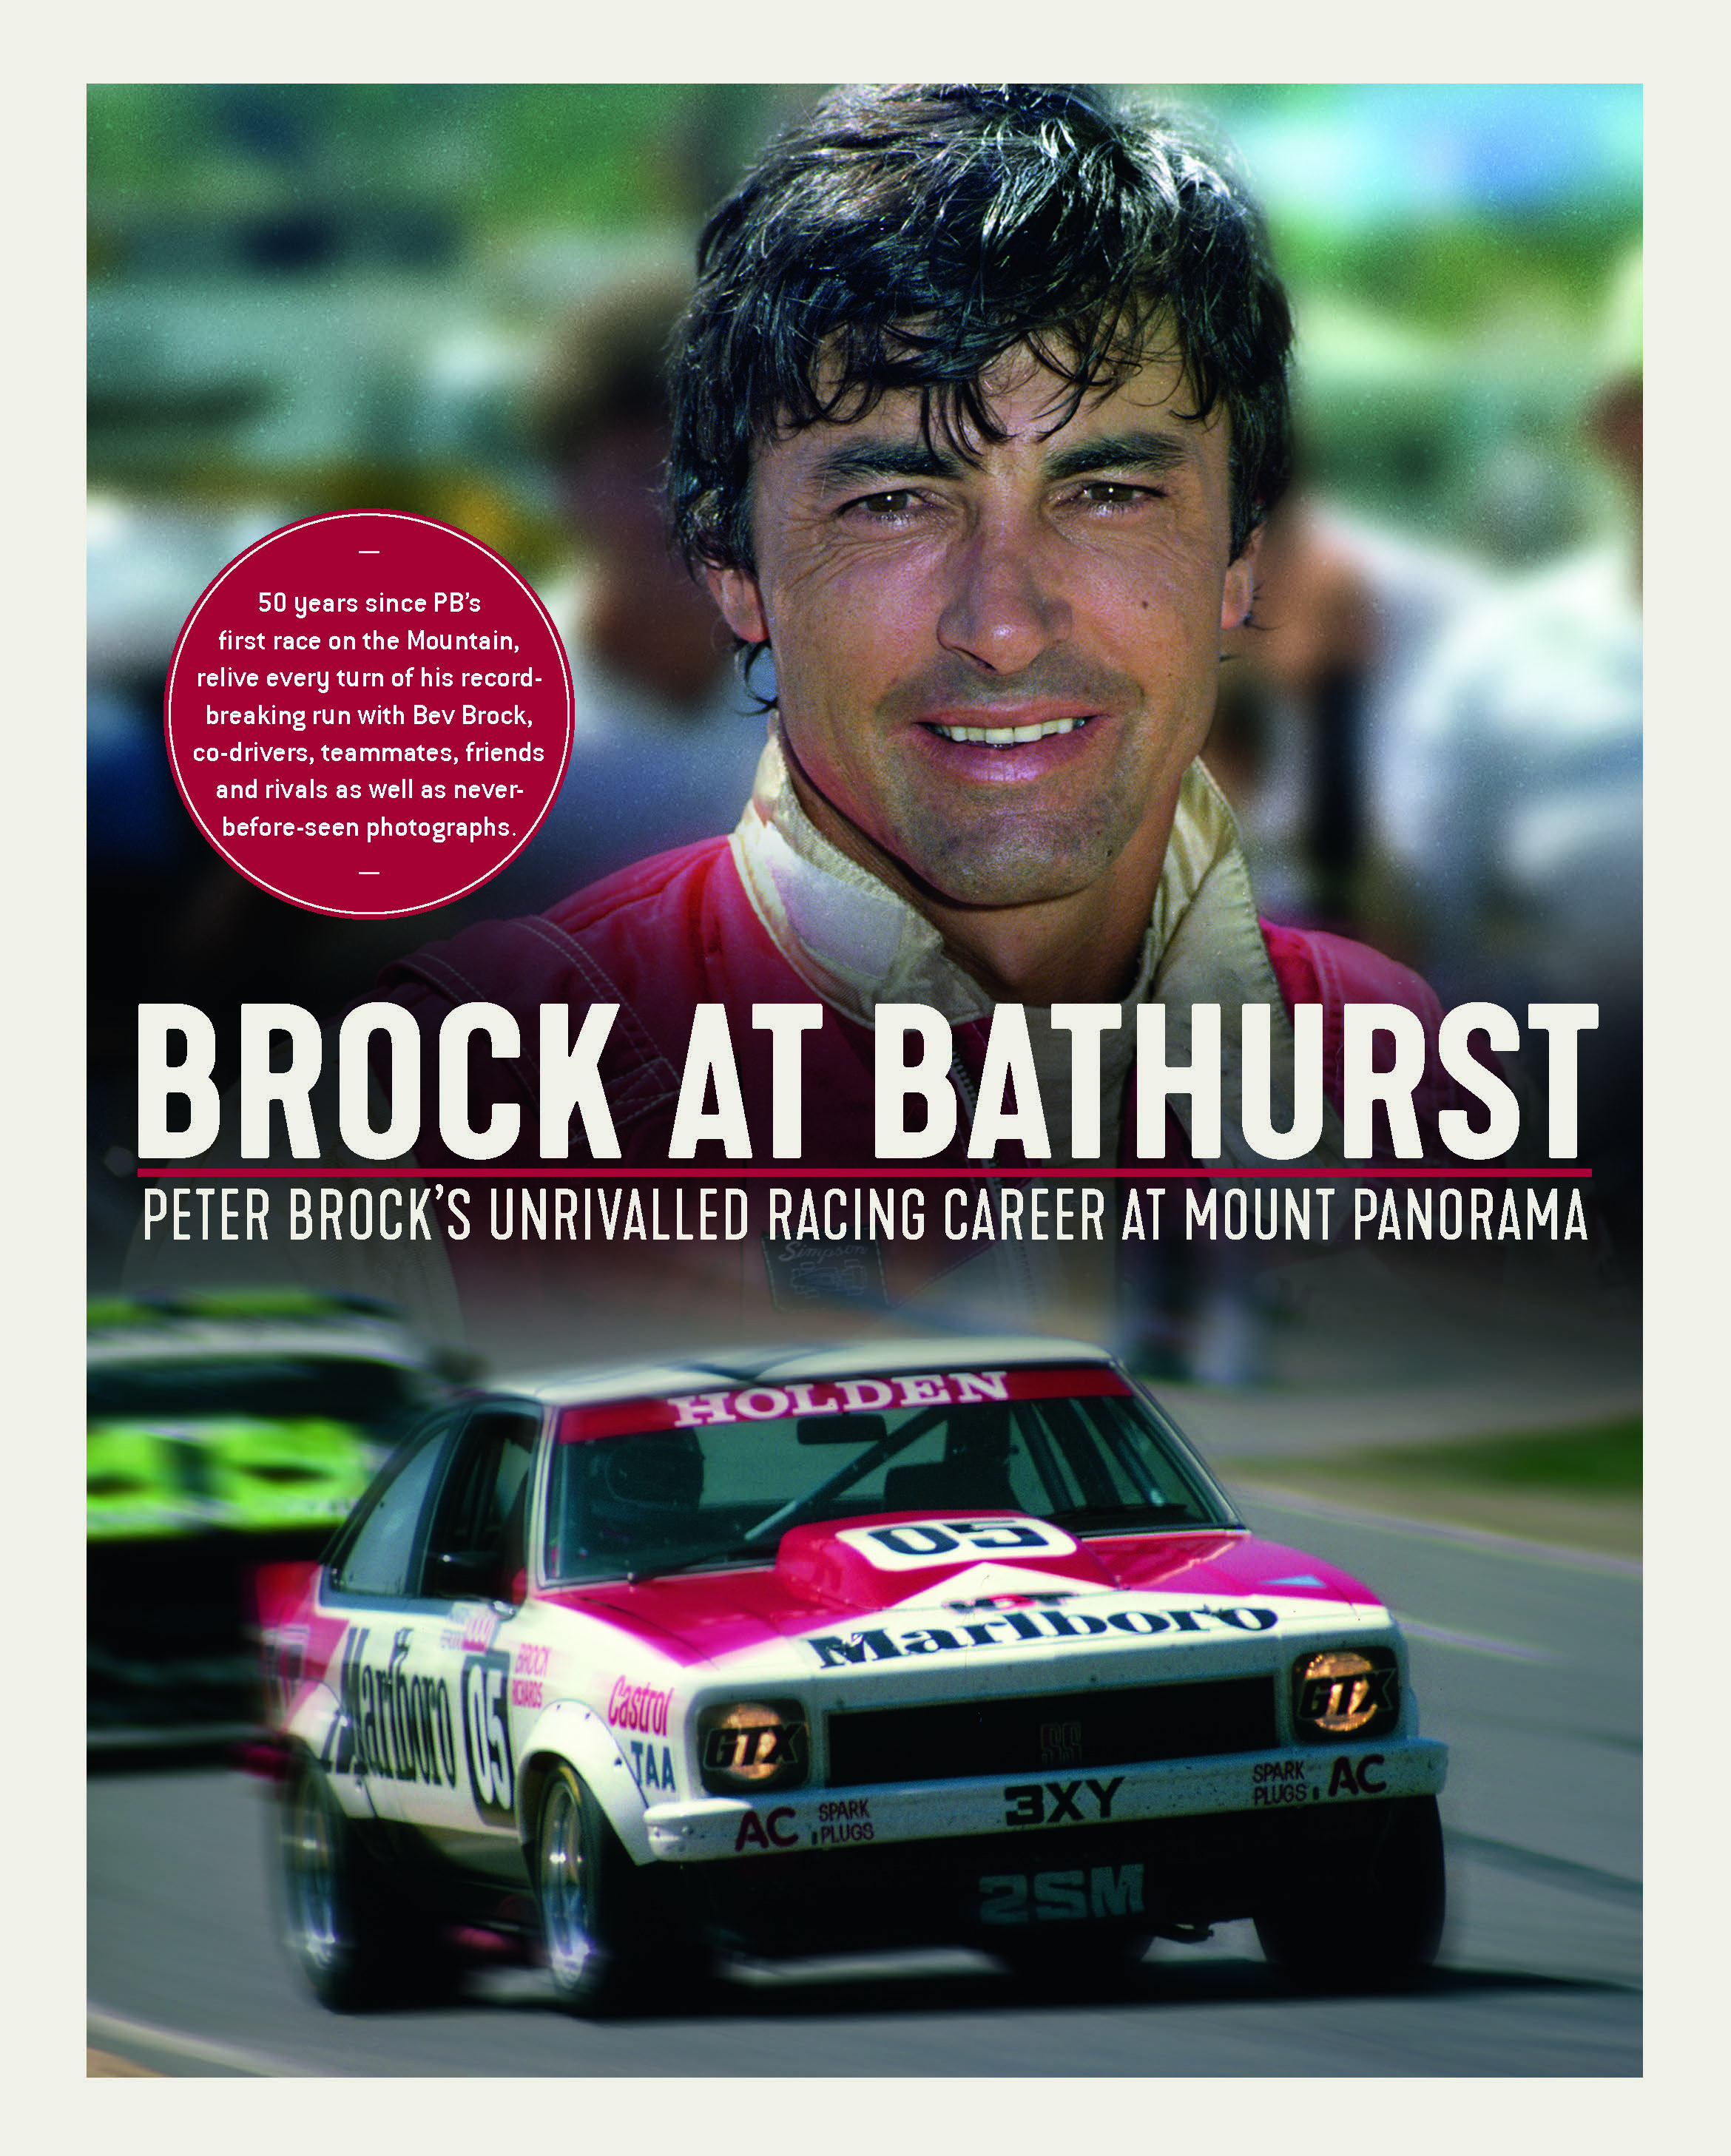 Brock at Bathurst Peter Brock Bev Brock